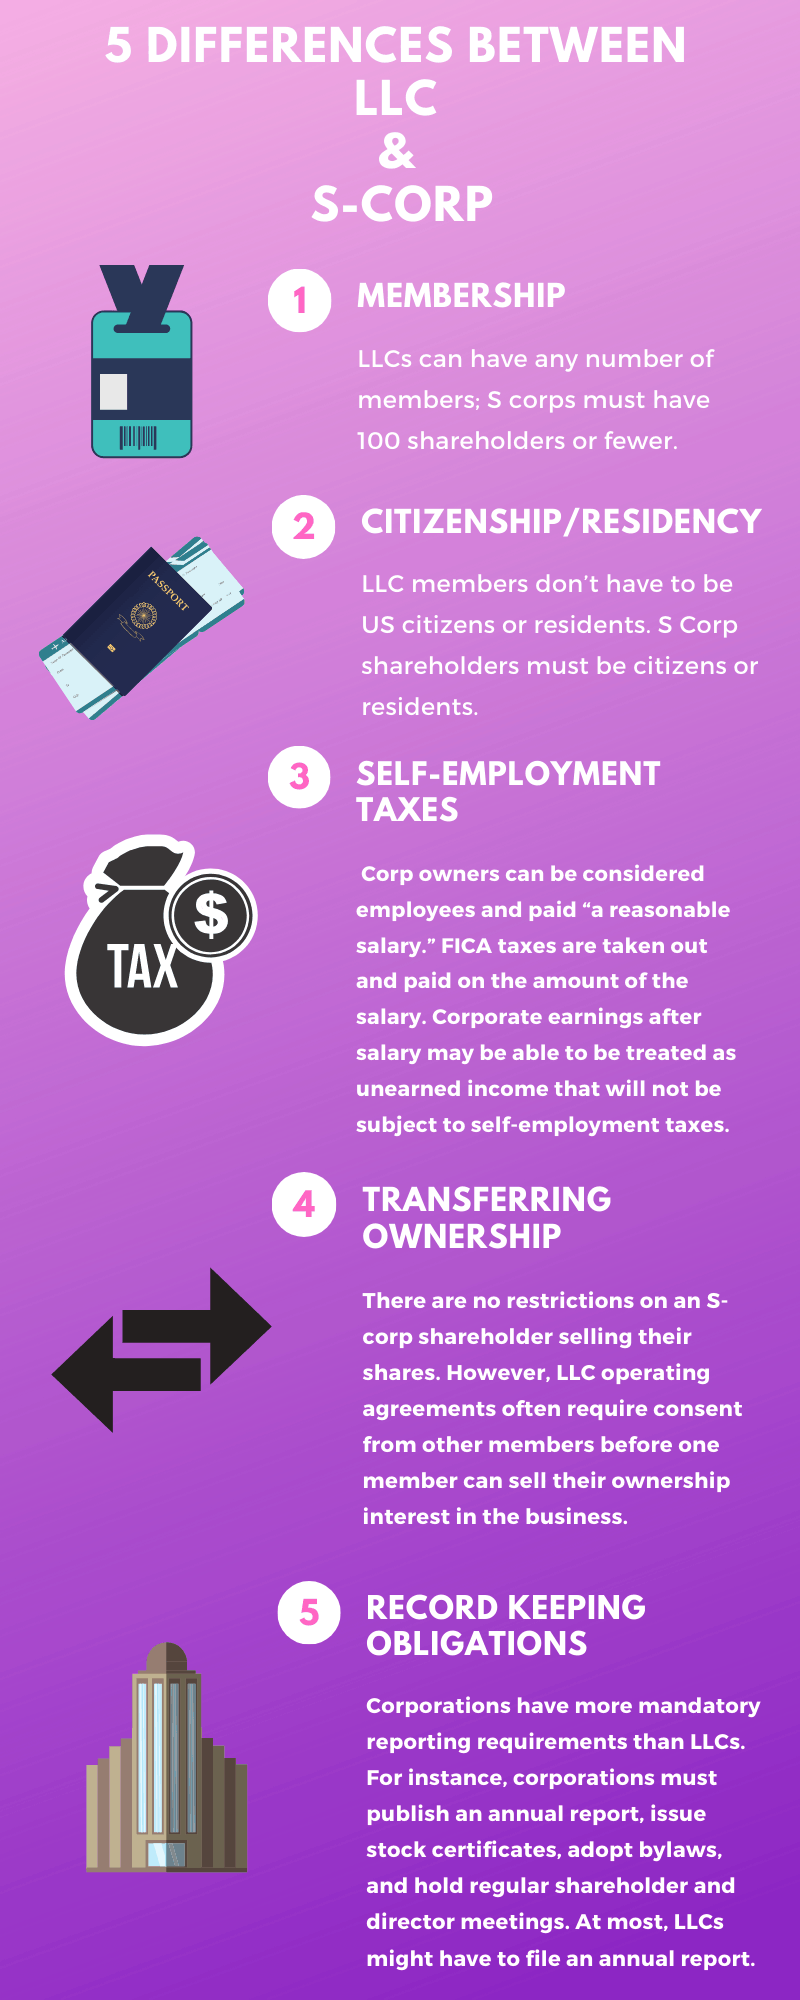 5-differences-between-llc-and-s-corp-infographic-attorney-inna-fershteyn-business-law-attorney-nyc